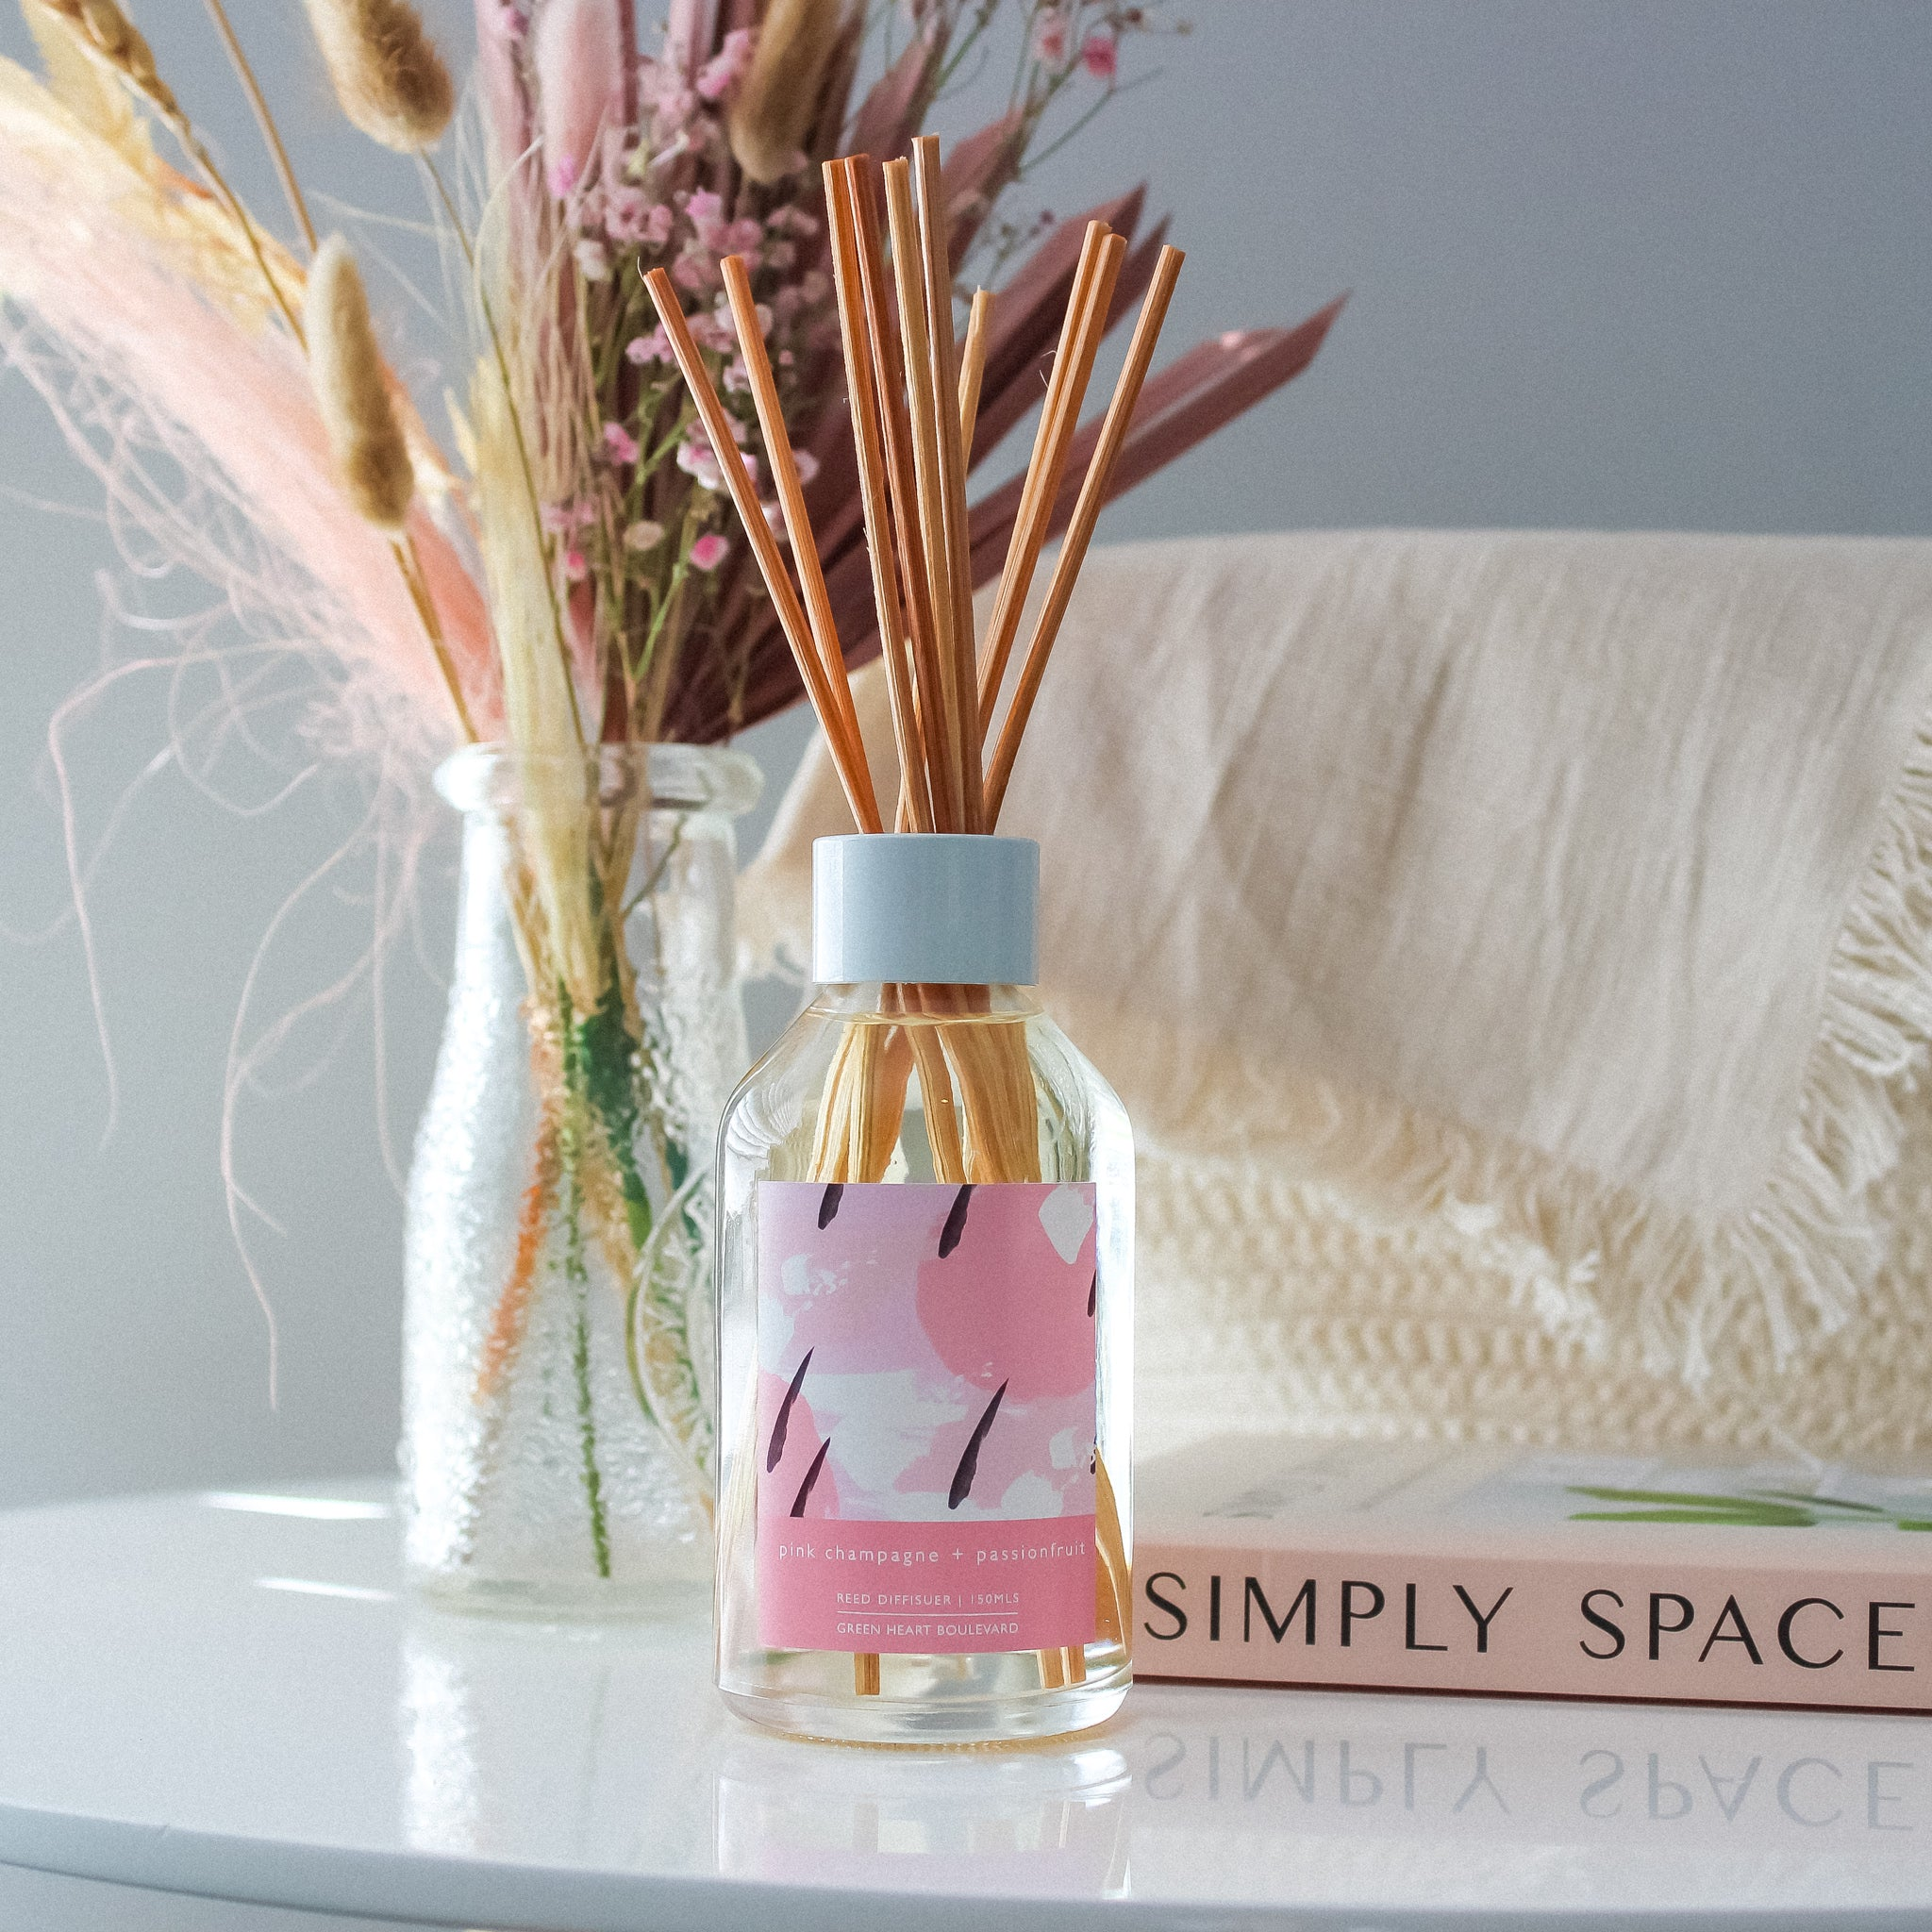 Pink Champagne + Passionfruit - Diffuser